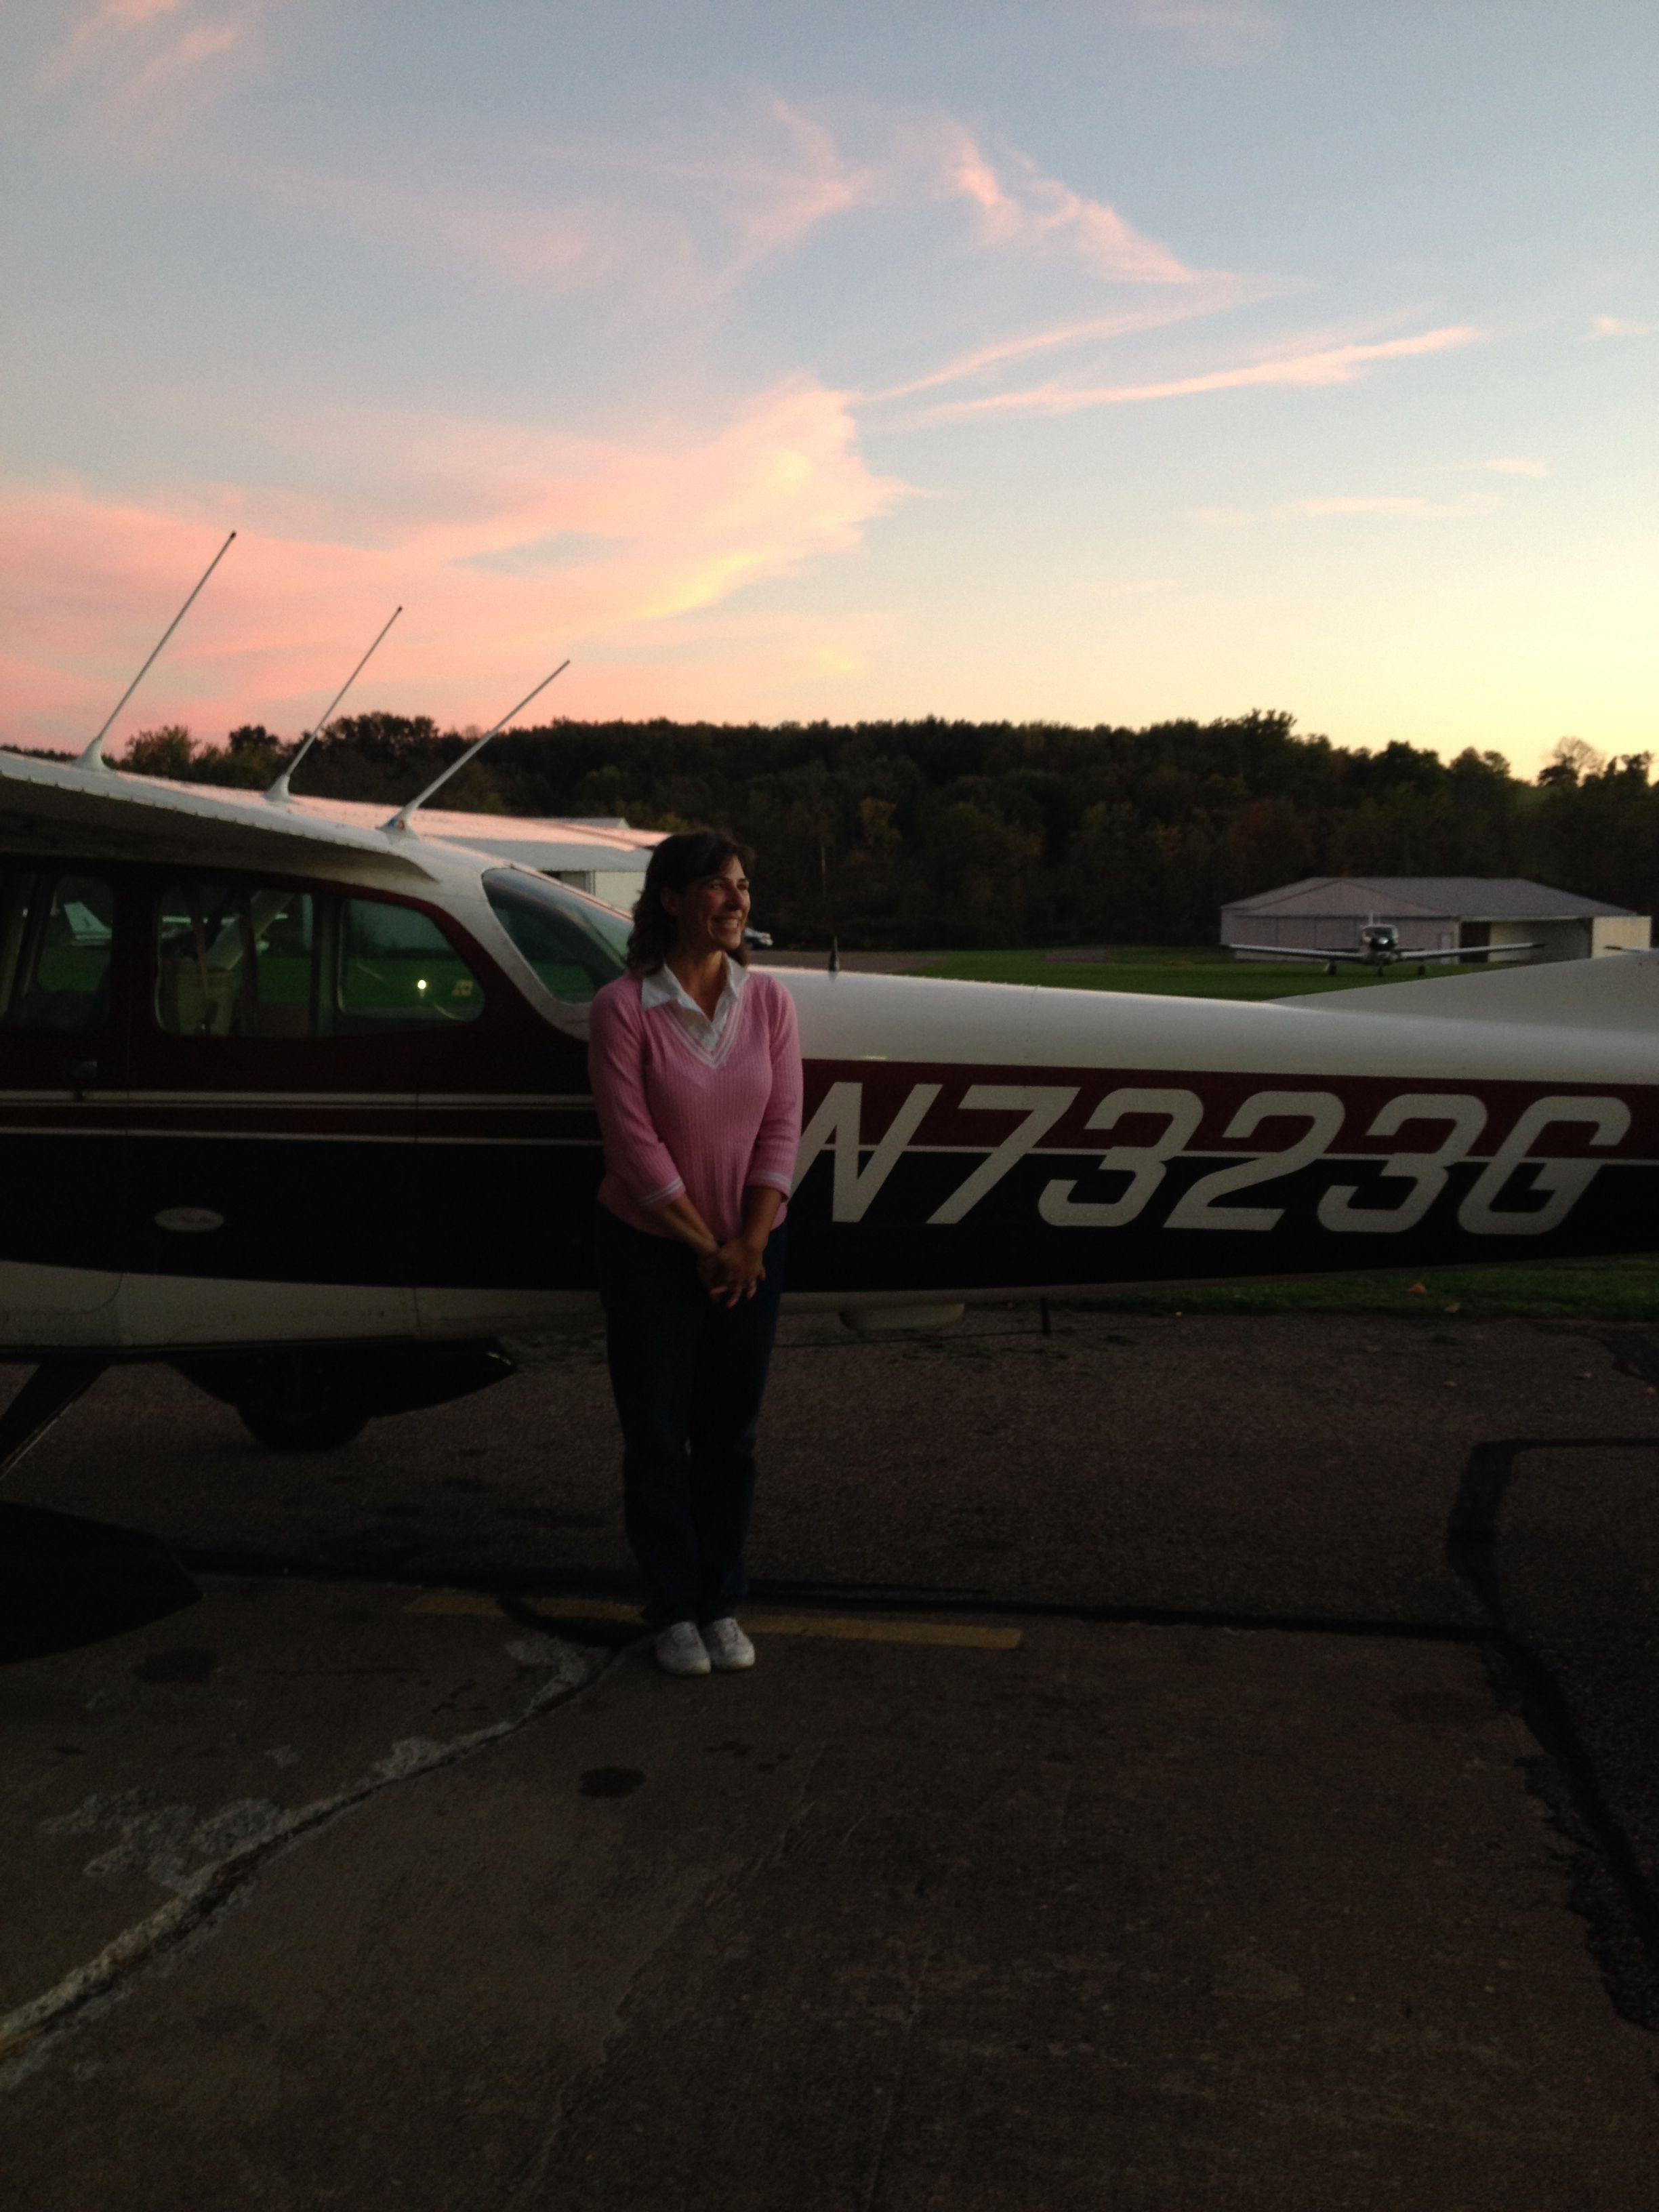 1st Solo! (With images) Aviation, Soloing, Highway